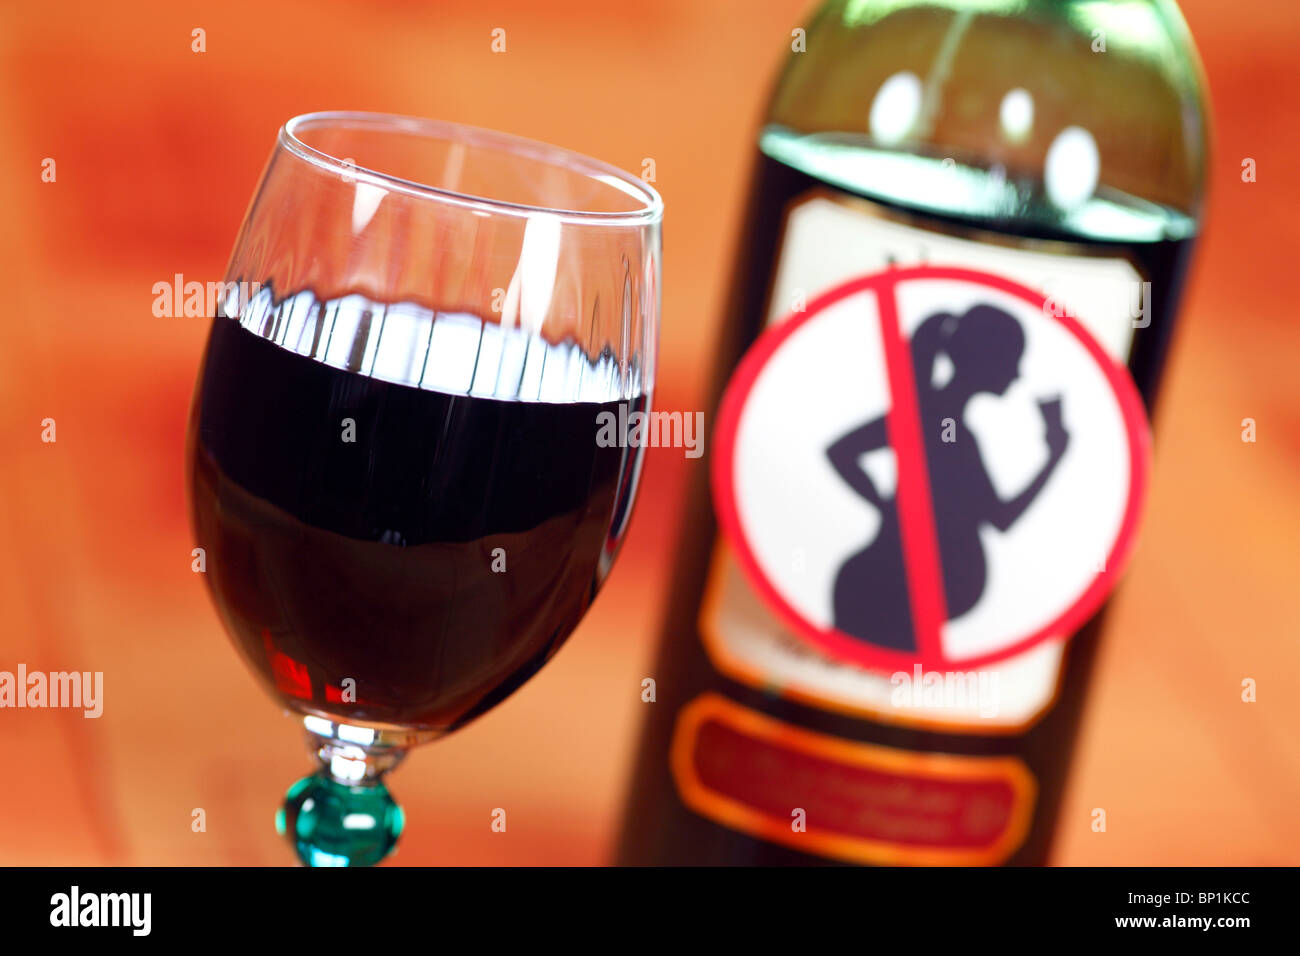 Glass and bottle of red wine with 'Unsuitable for pregnant women' sign - Stock Image